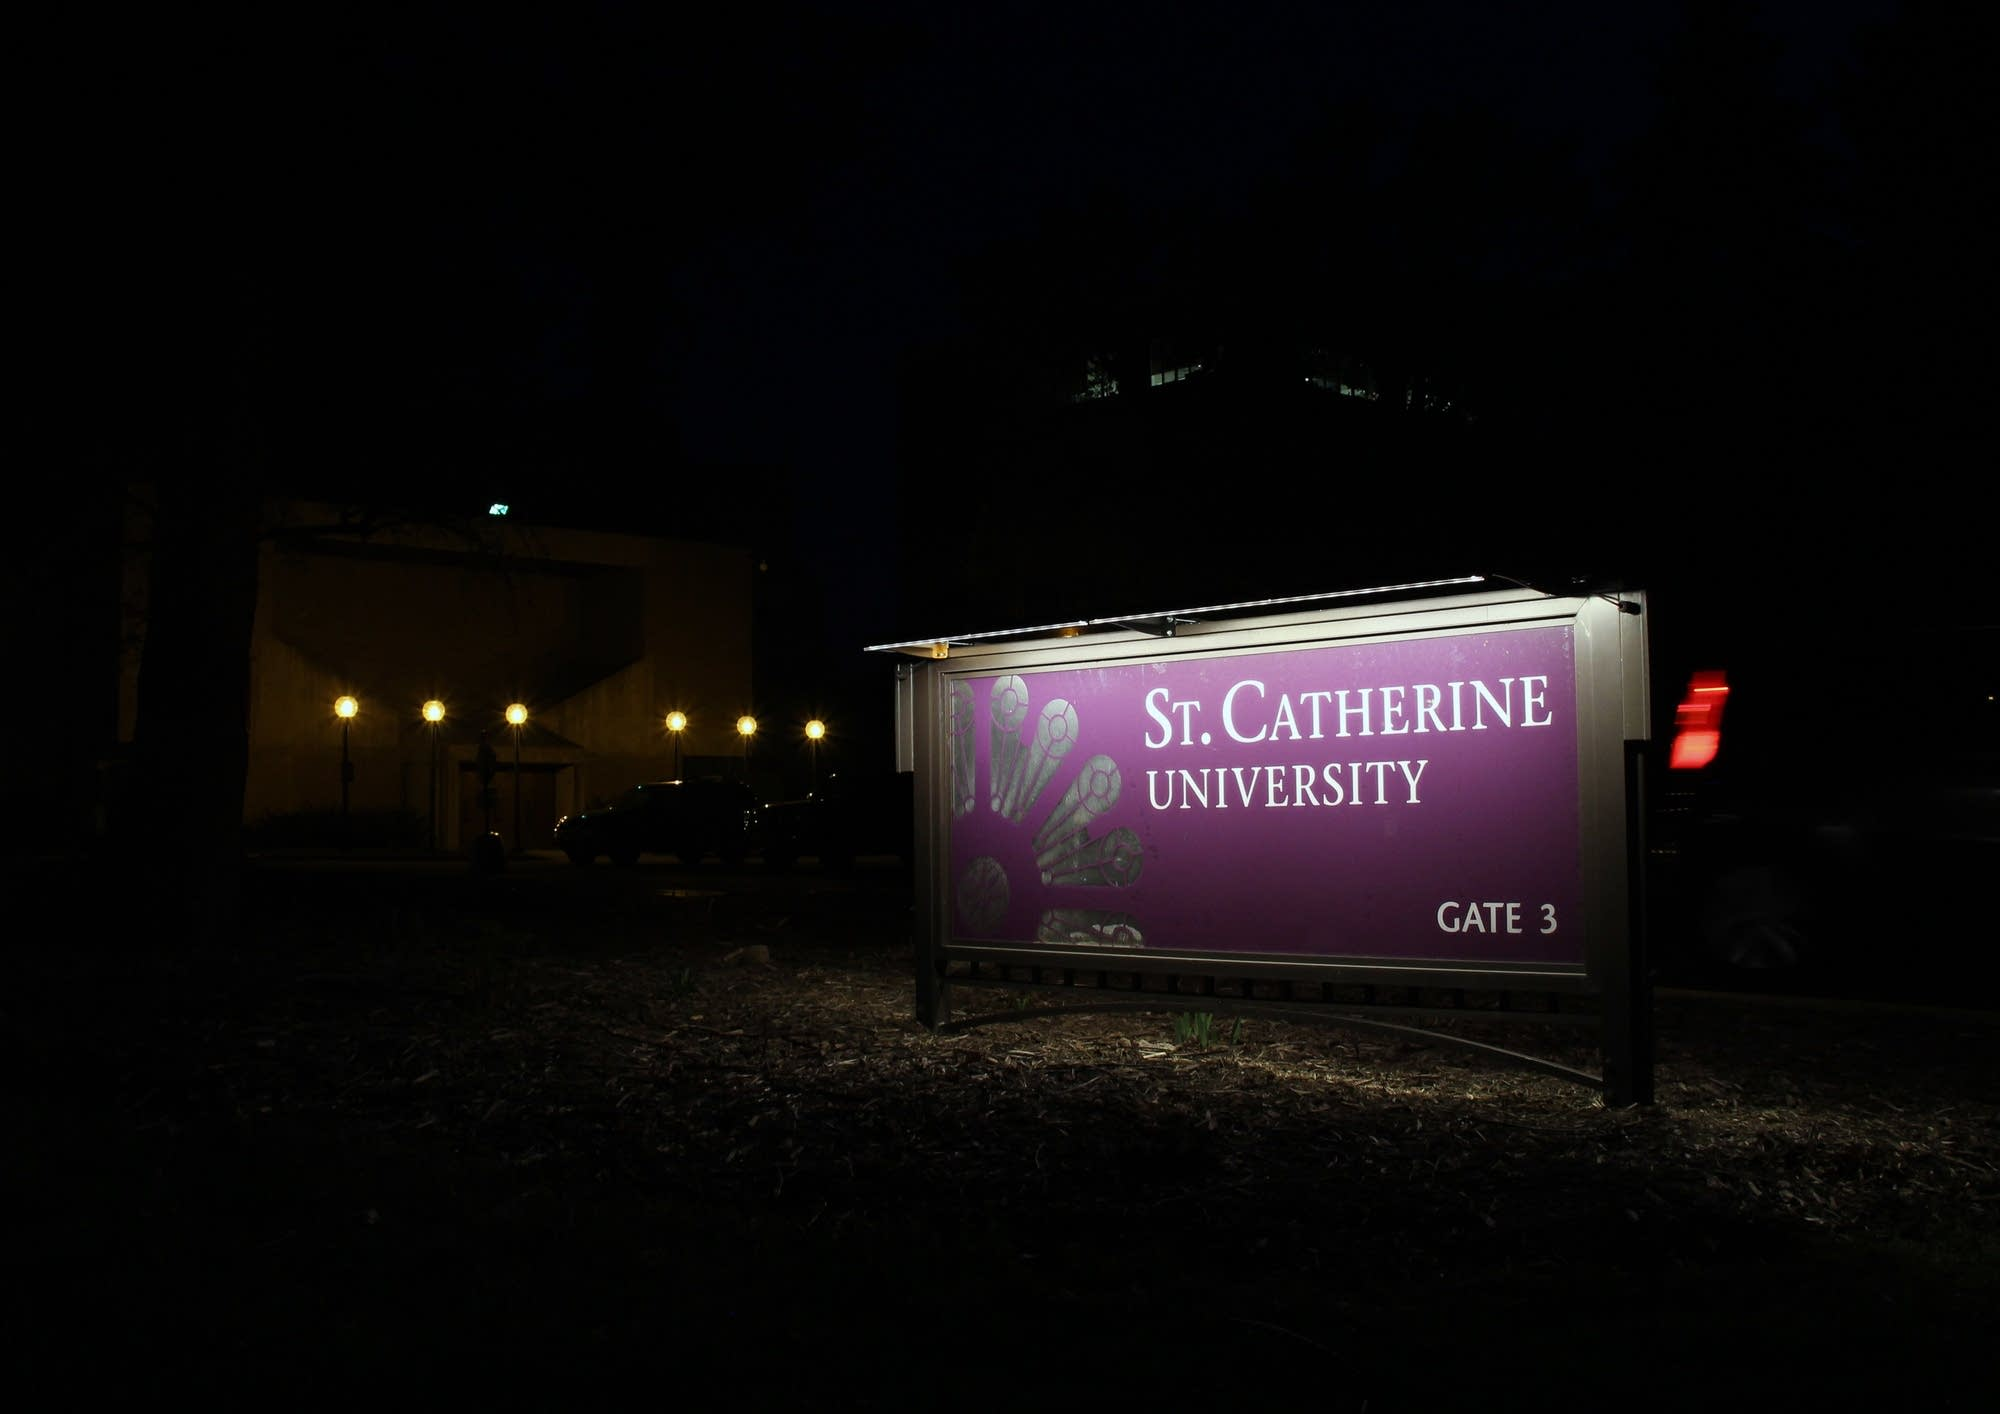 St. Catherine University in St. Paul